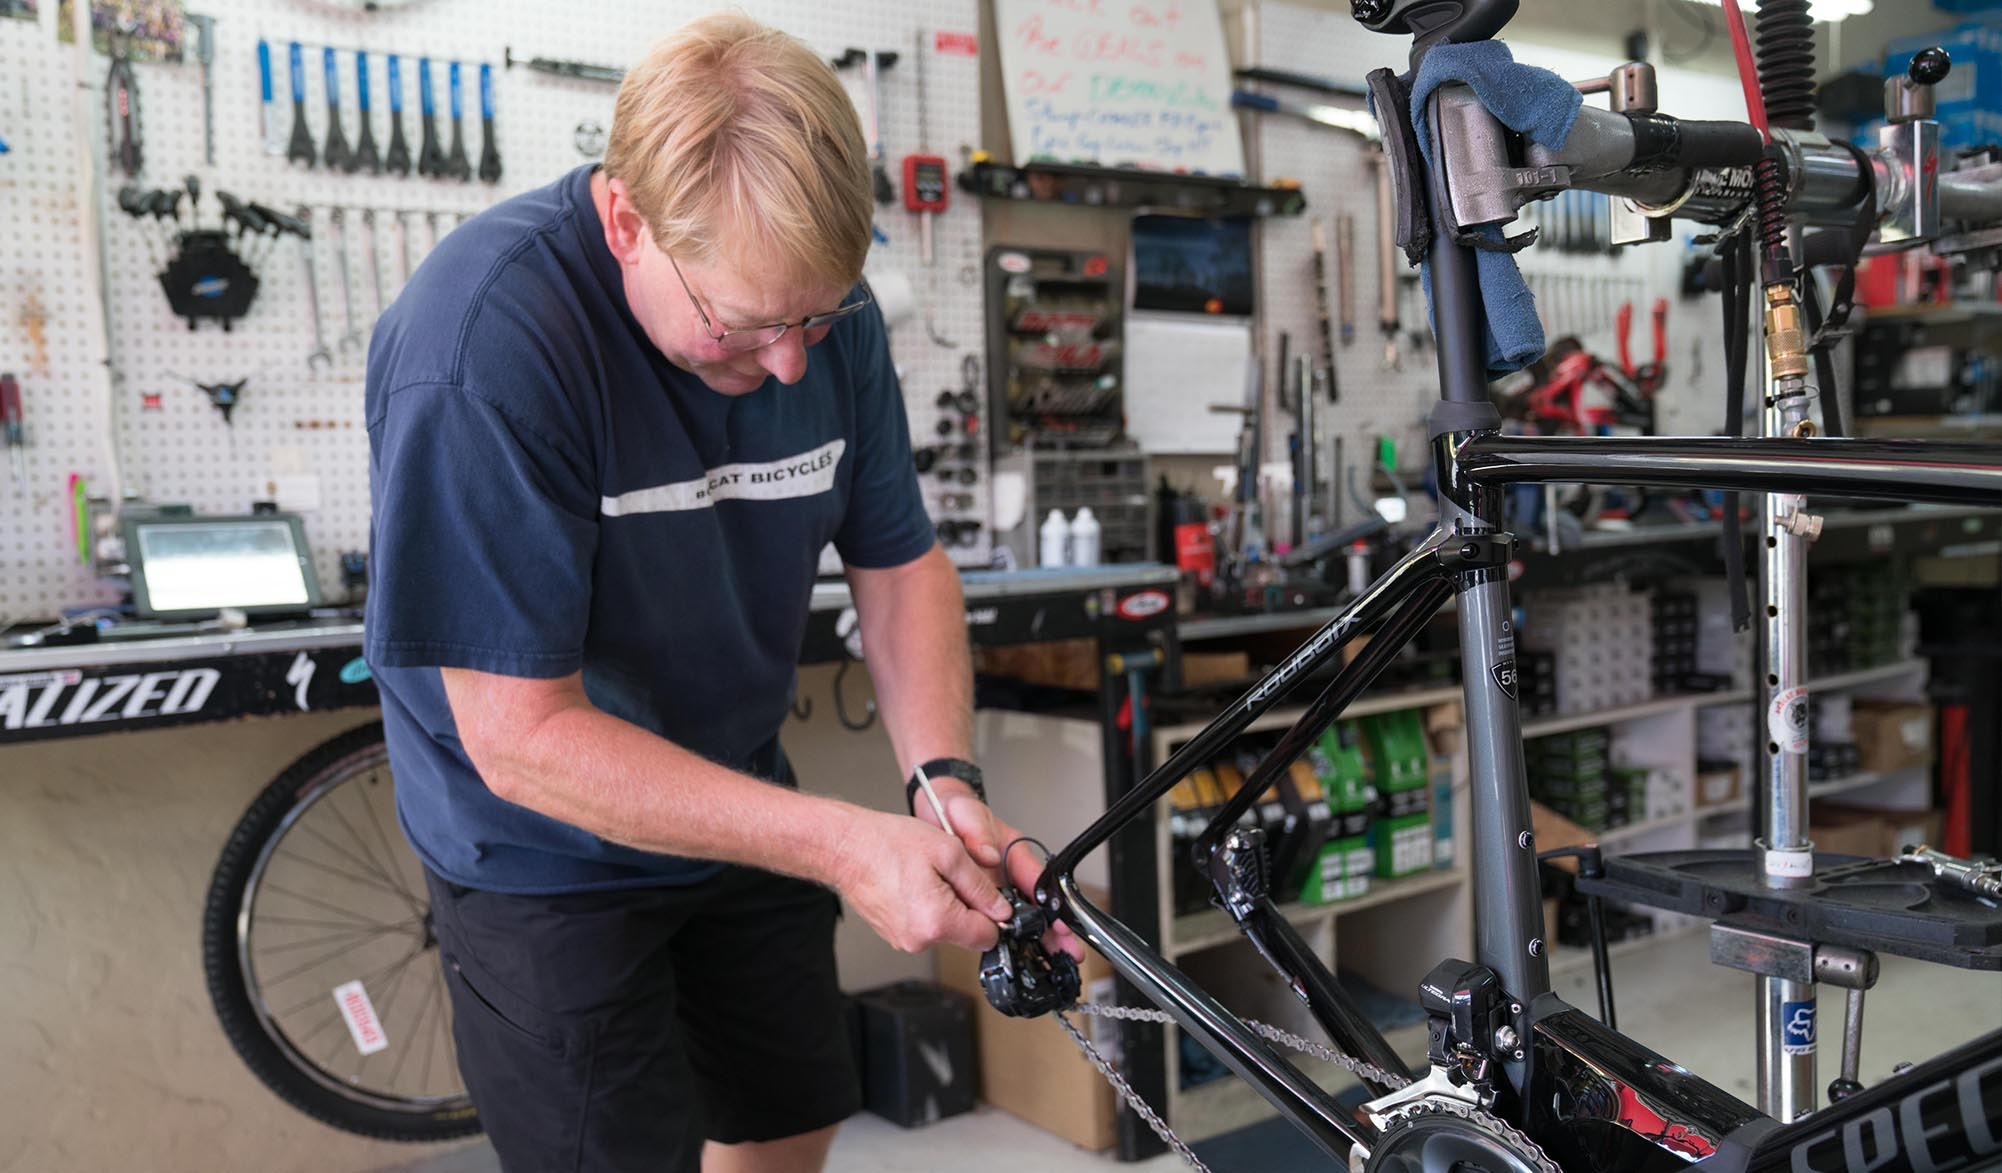 Bobcat Bicycles Mechanic Working on a Bike